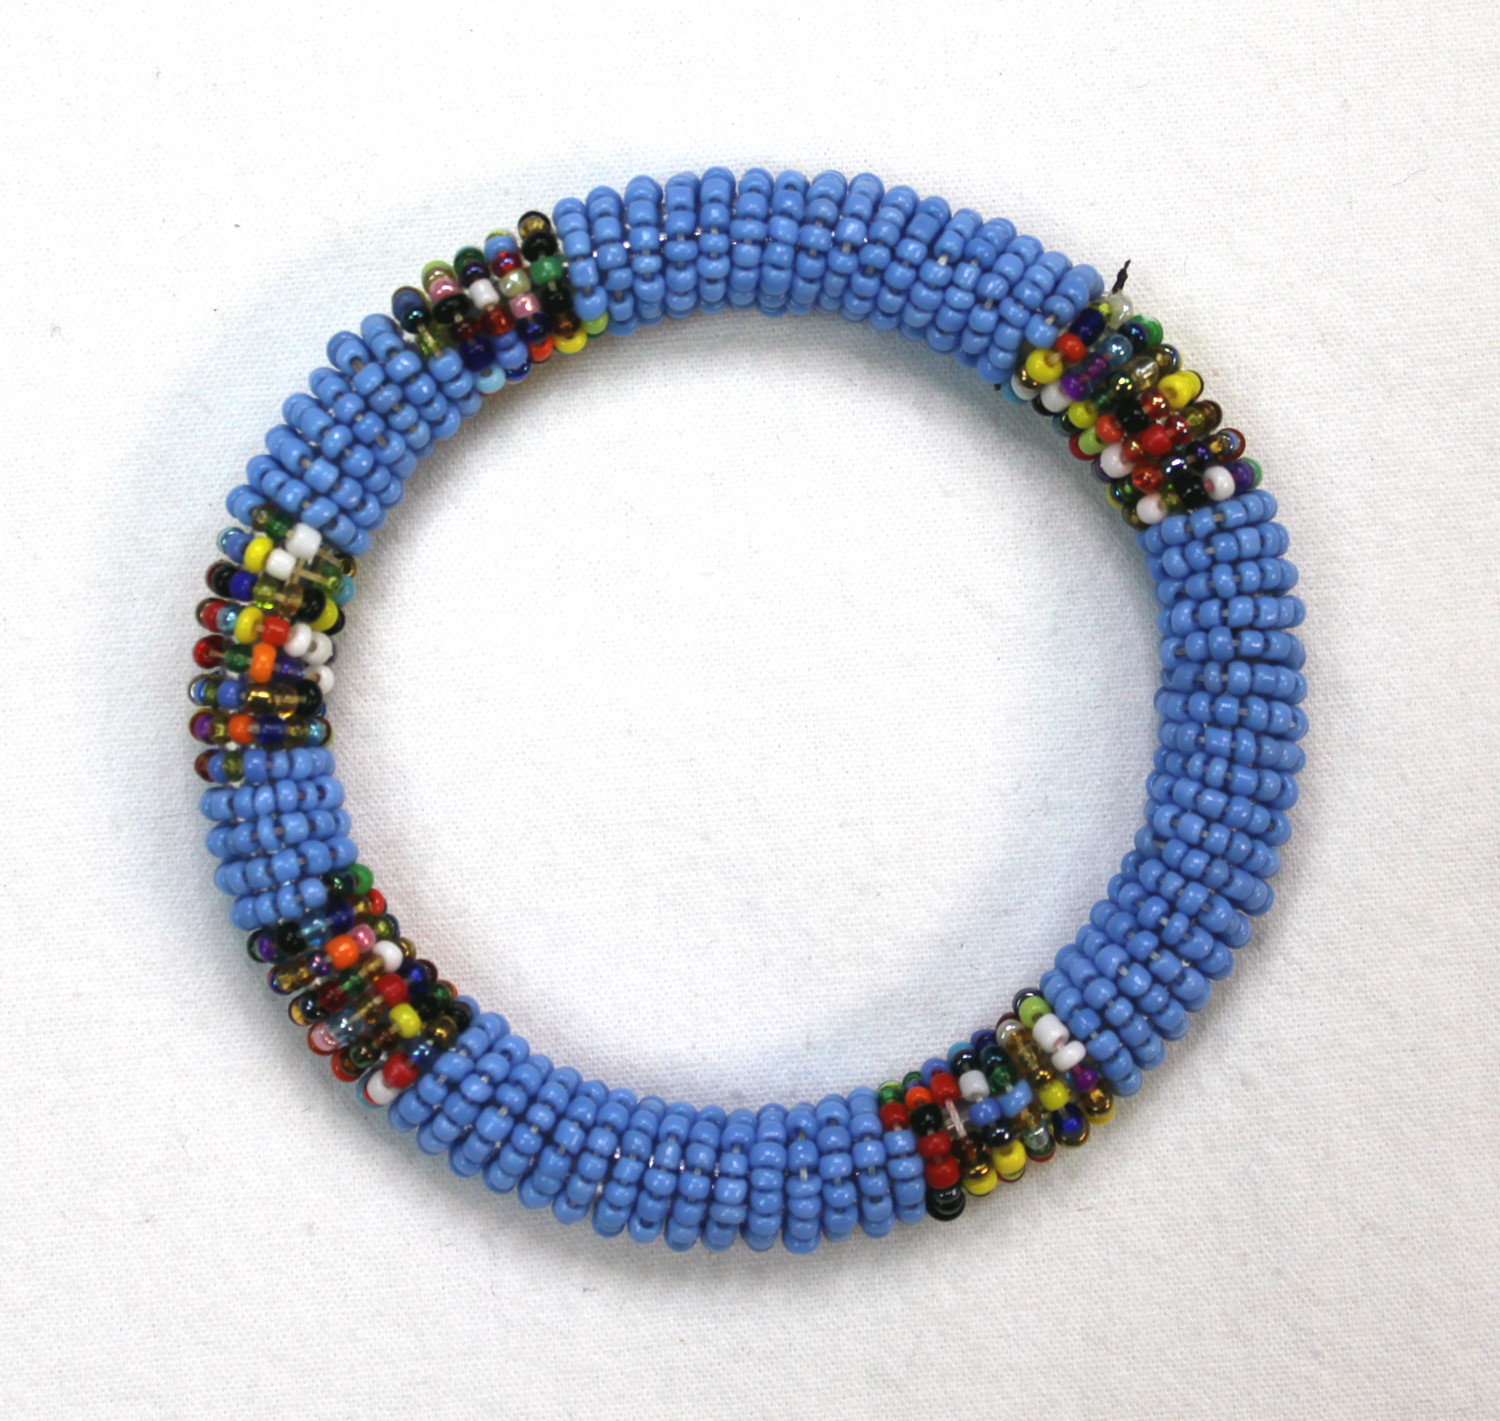 Beautiful gifts from Kenya, by Studio 55